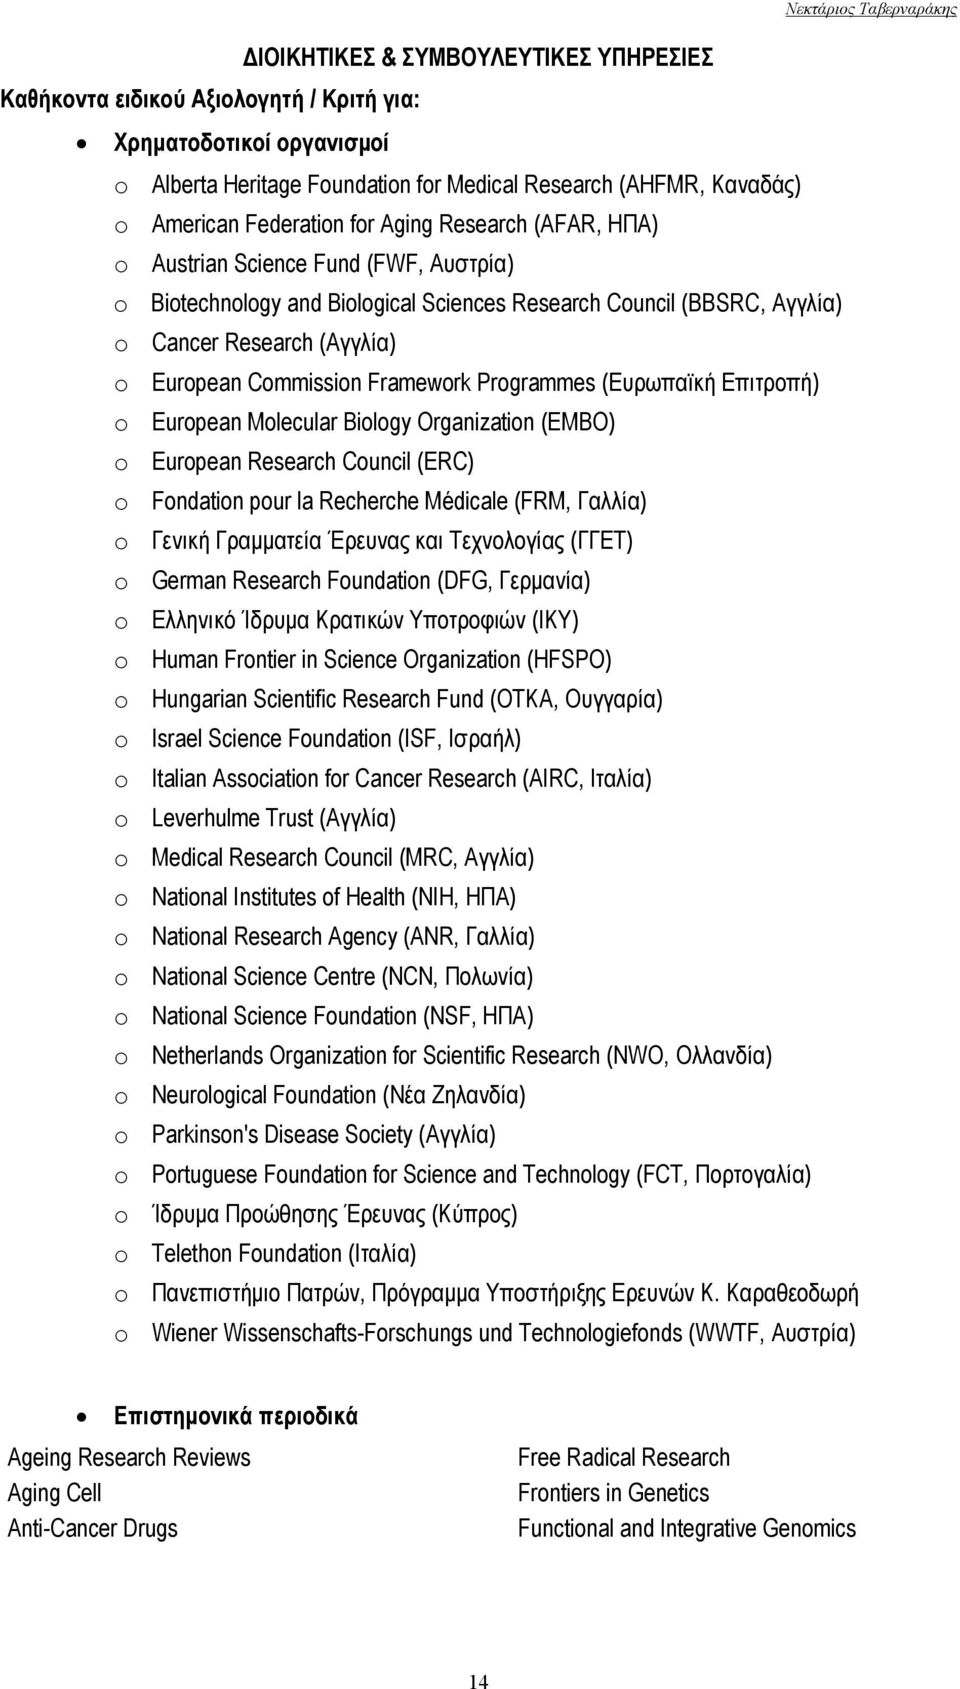 Framework Programmes (Ευρωπαϊκή Επιτροπή) o European Molecular Biology Organization (EMBO) o European Research Council (ERC) o Fondation pour la Recherche Médicale (FRM, Γαλλία) o Γενική Γραμματεία